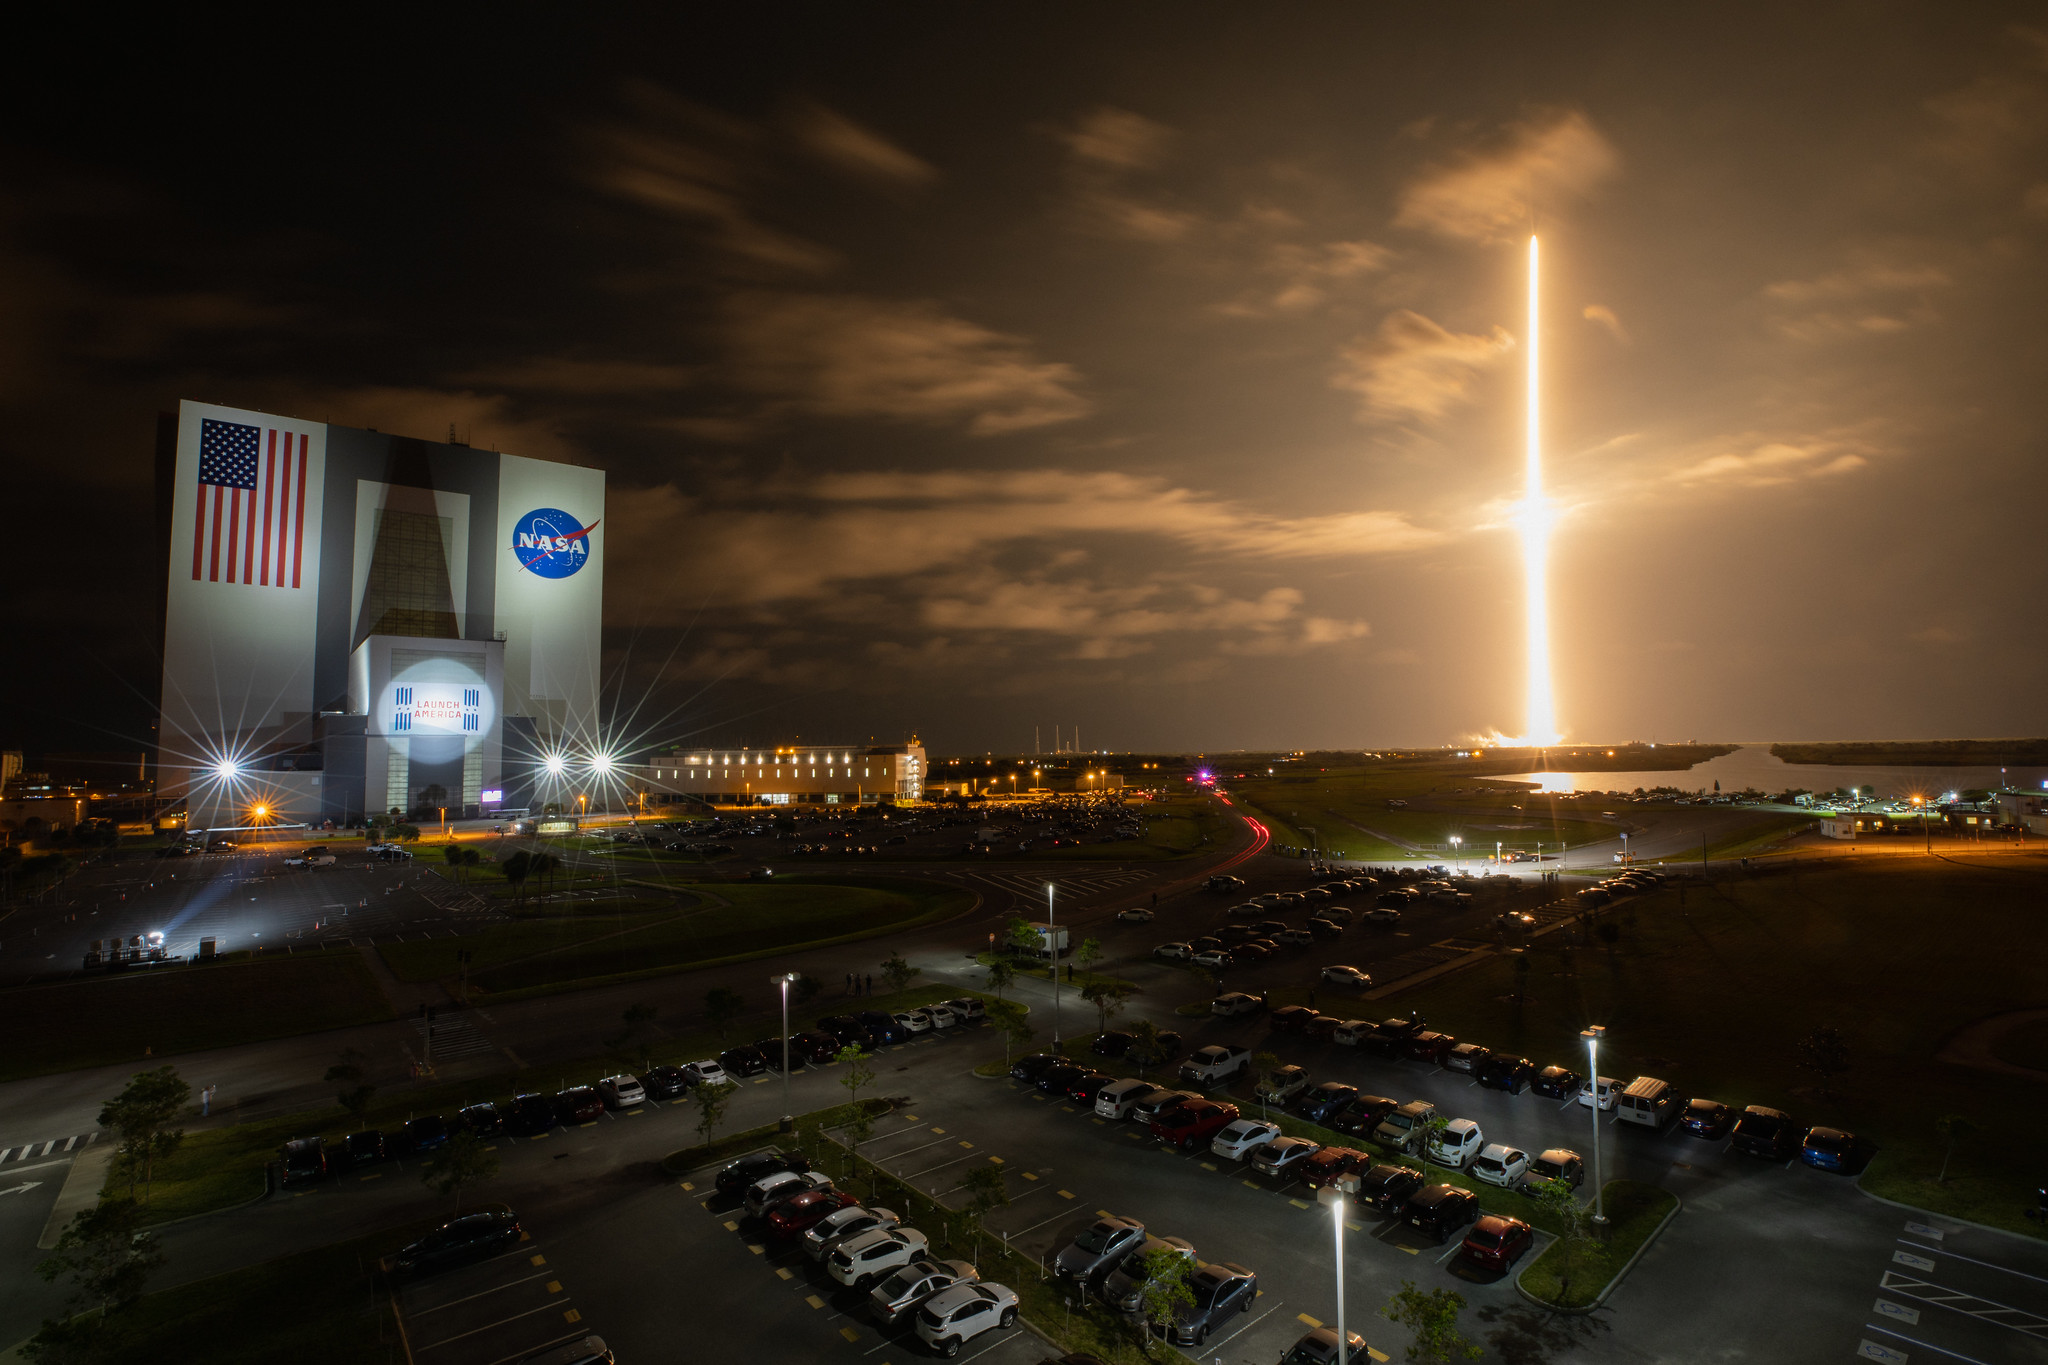 NASA's SpaceX Crew-2 mission lifts off from Kennedy Space Center in April 23, 2021.